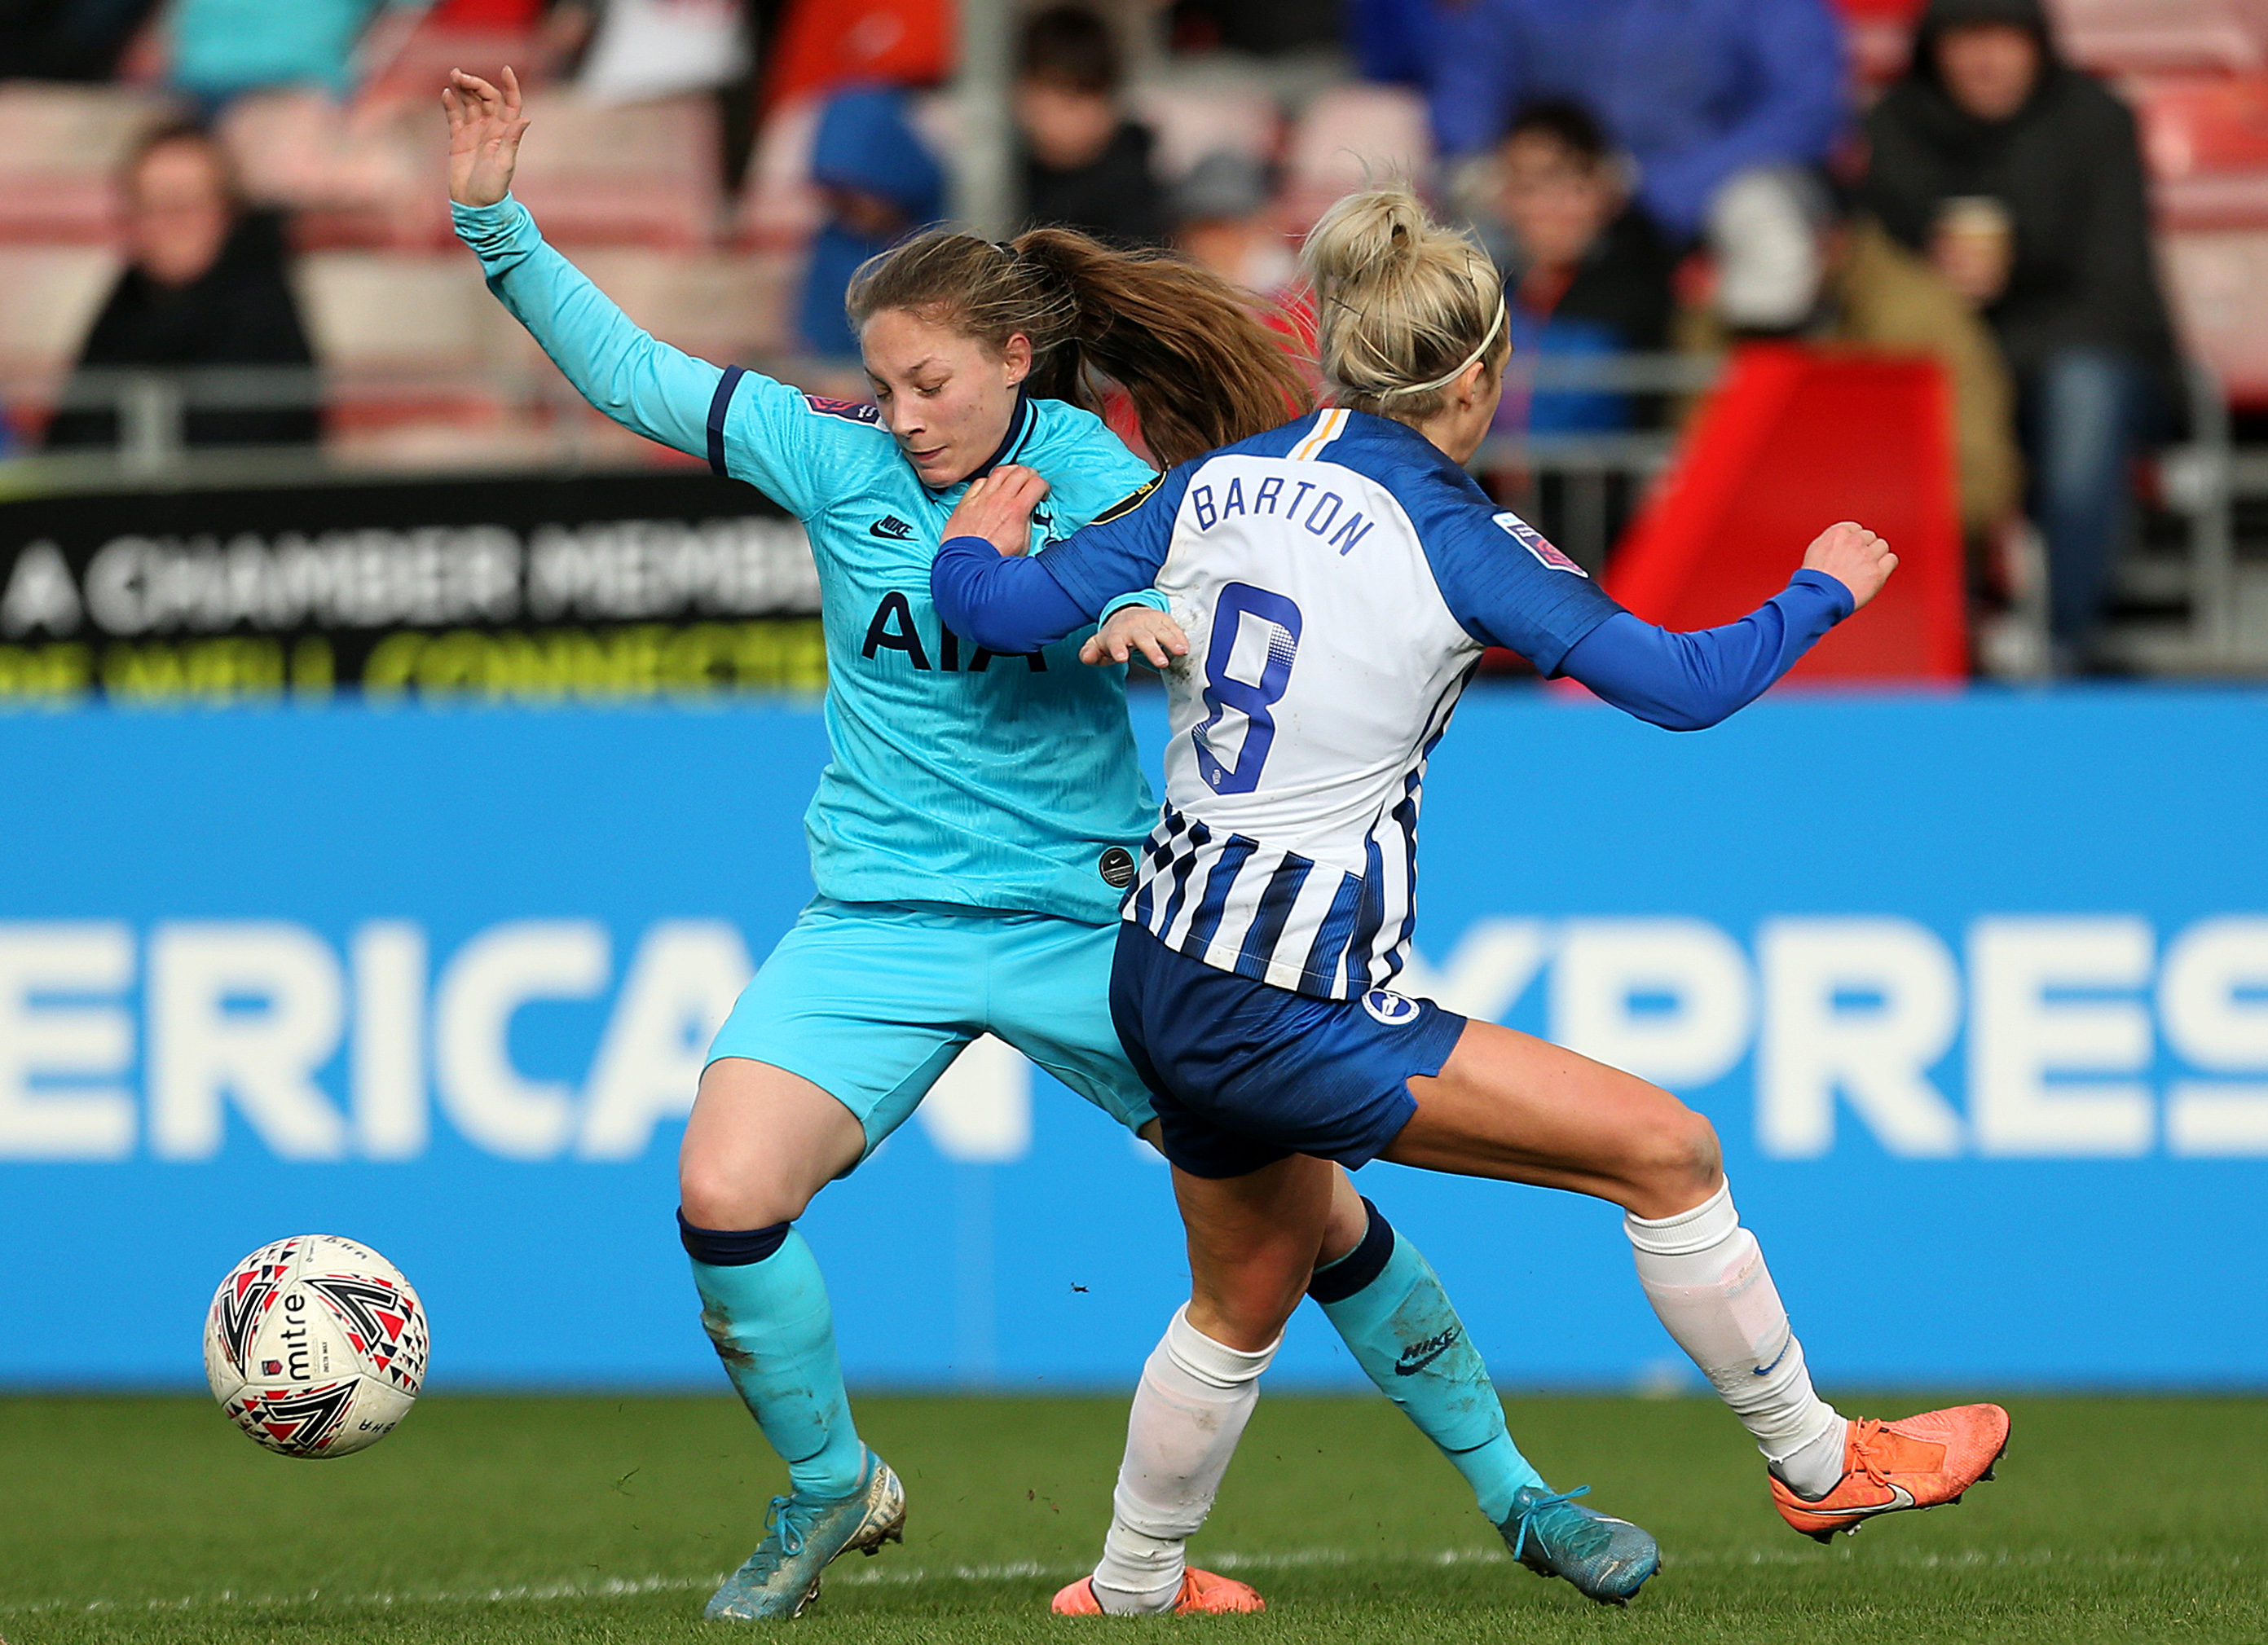 Brighton and Hove Albion v Tottenham Hotspur - FA Womenâs Super League - The People's Pension Stadium